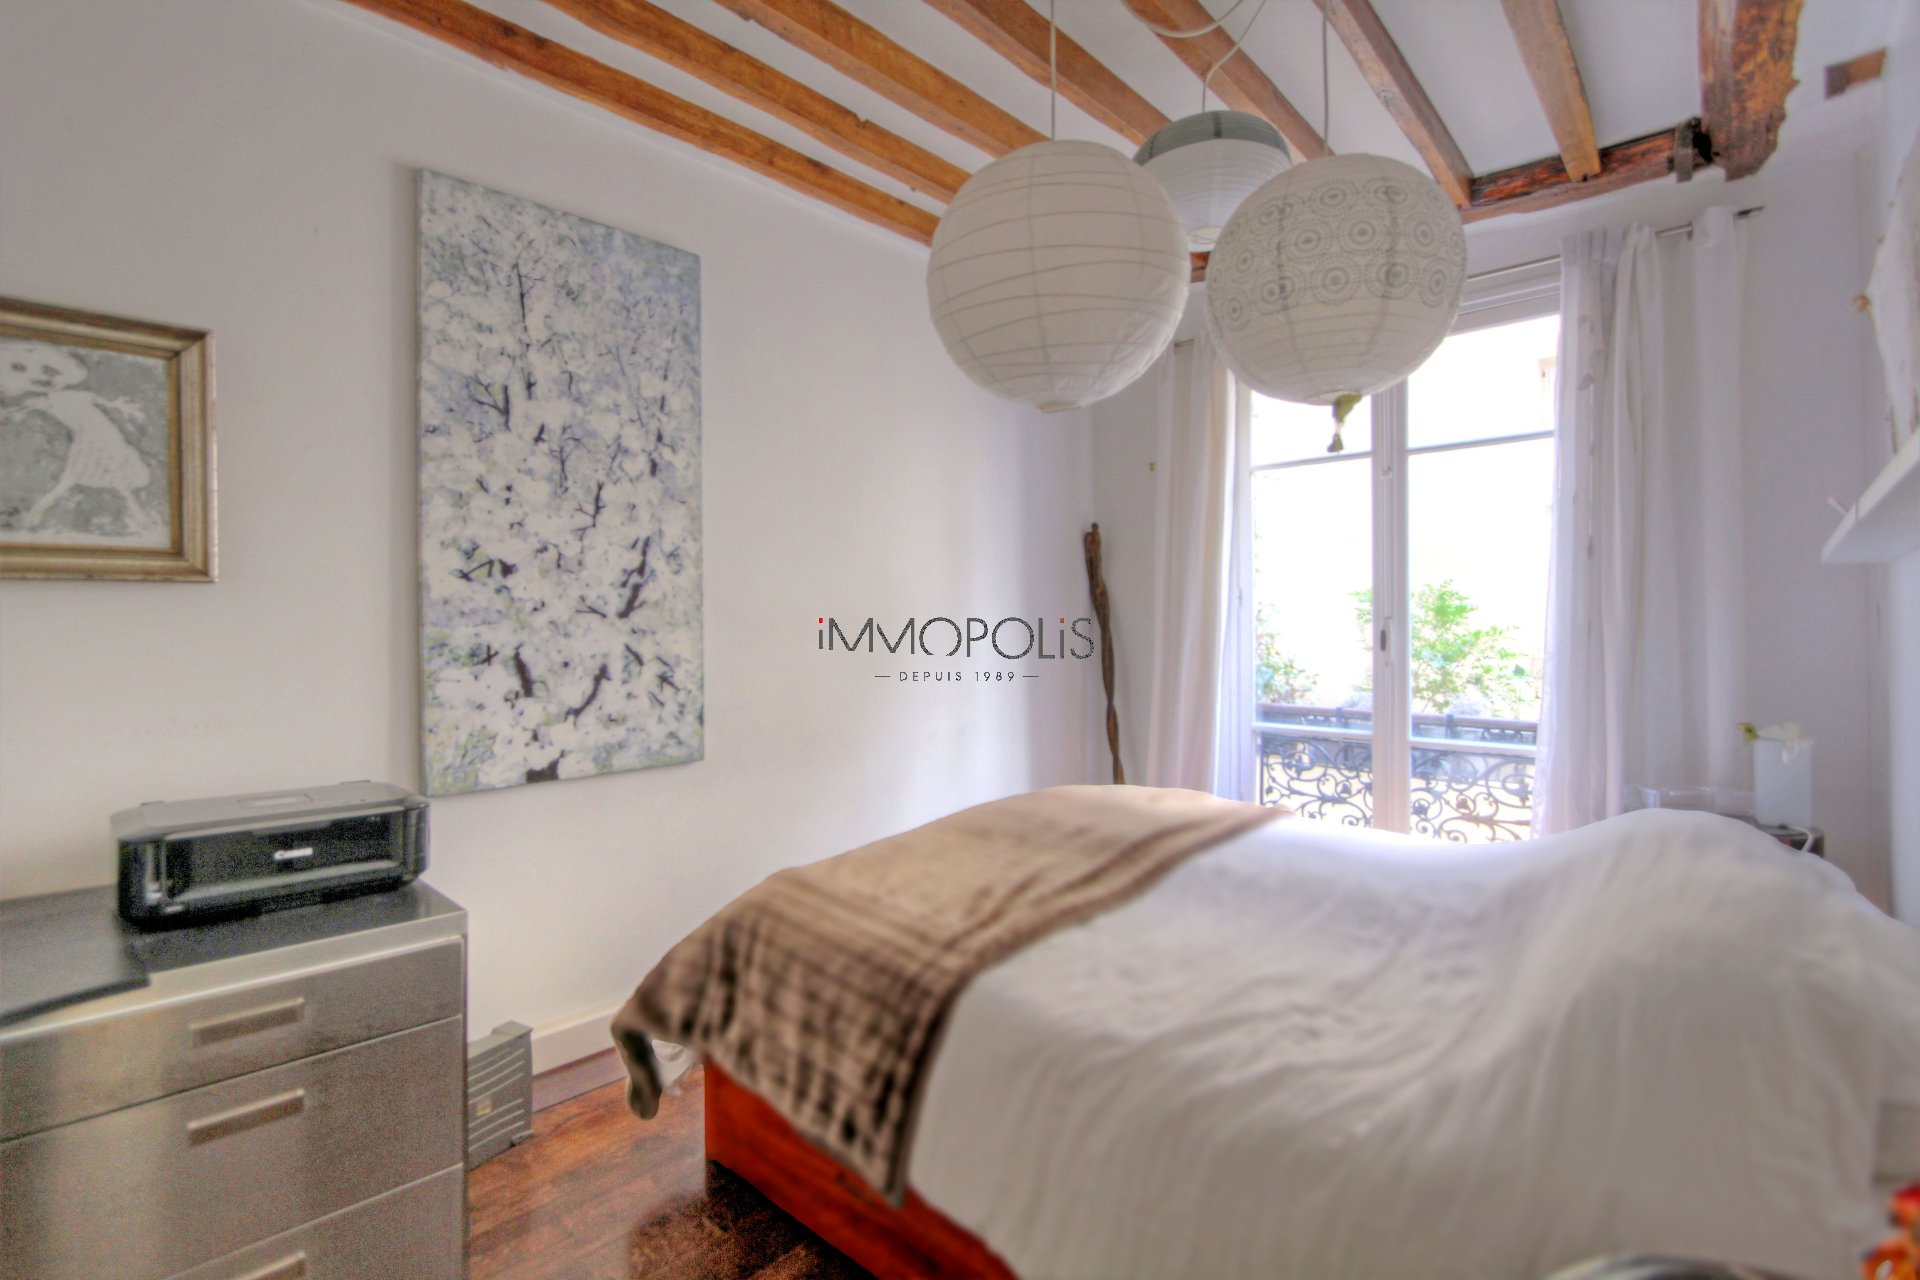 Beautiful 2 room apartment with beams in Montmartre! 5